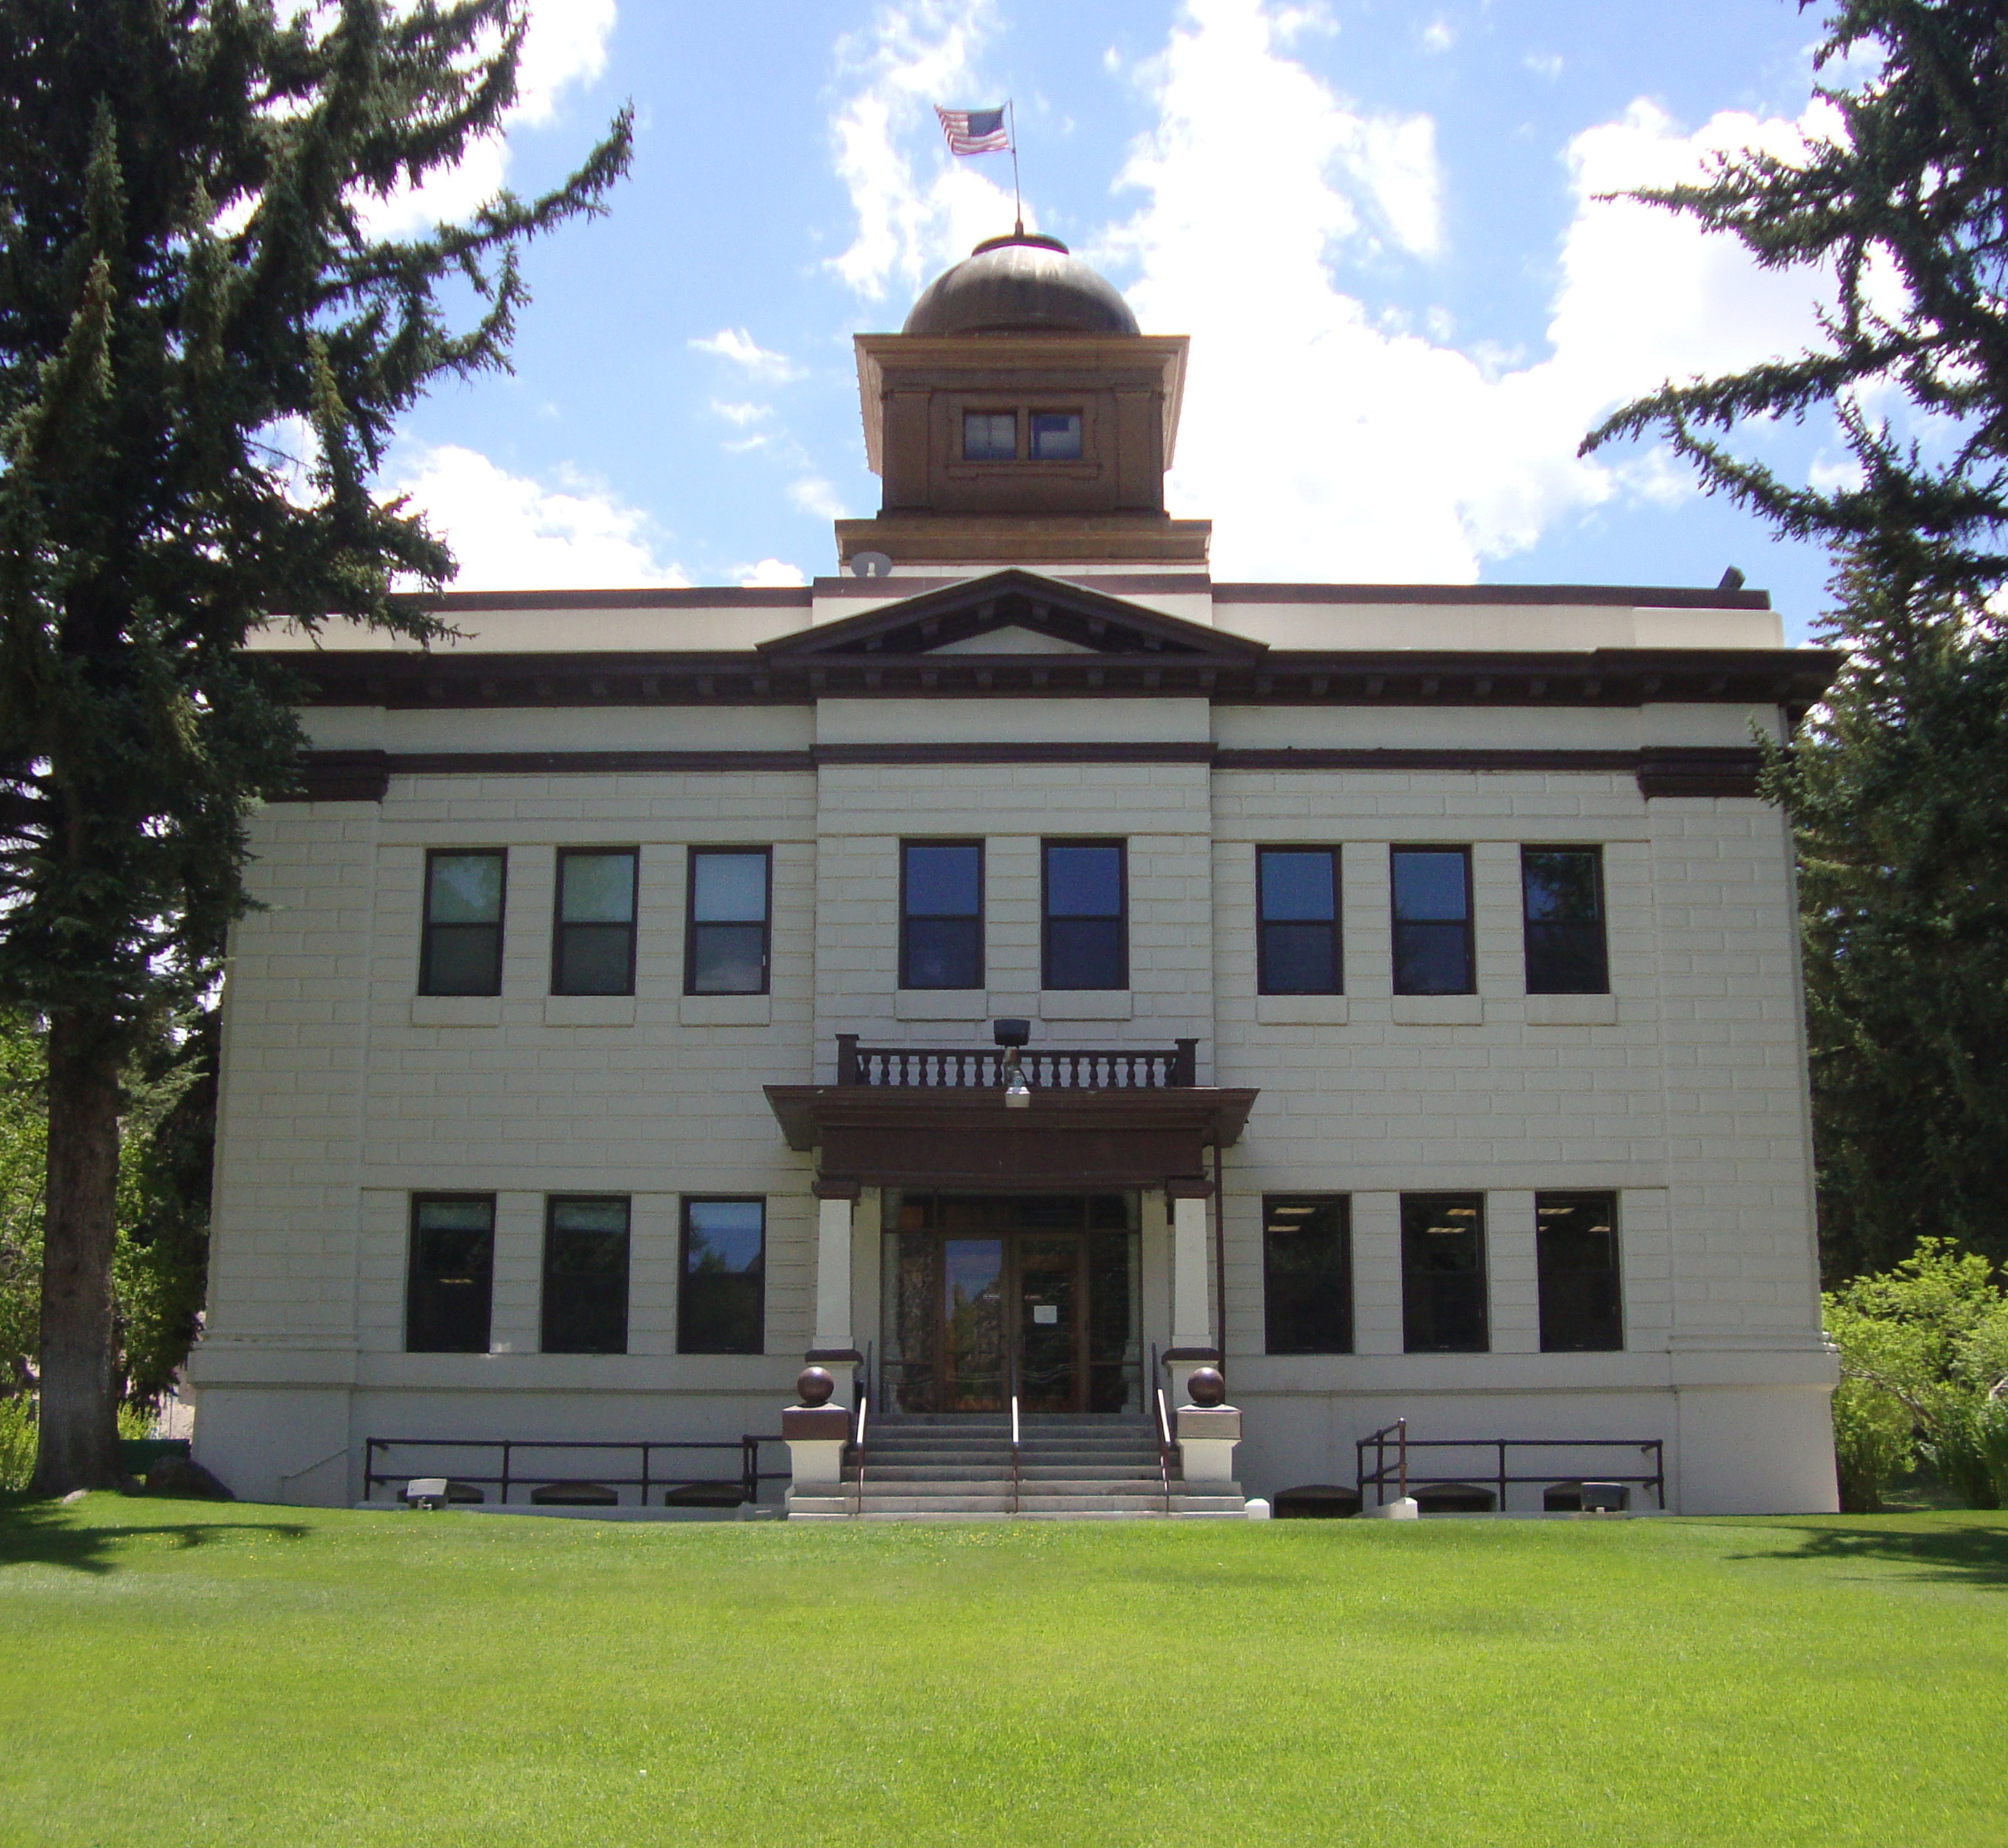 Image: The White Pine County Courthouse in Ely, Nevada